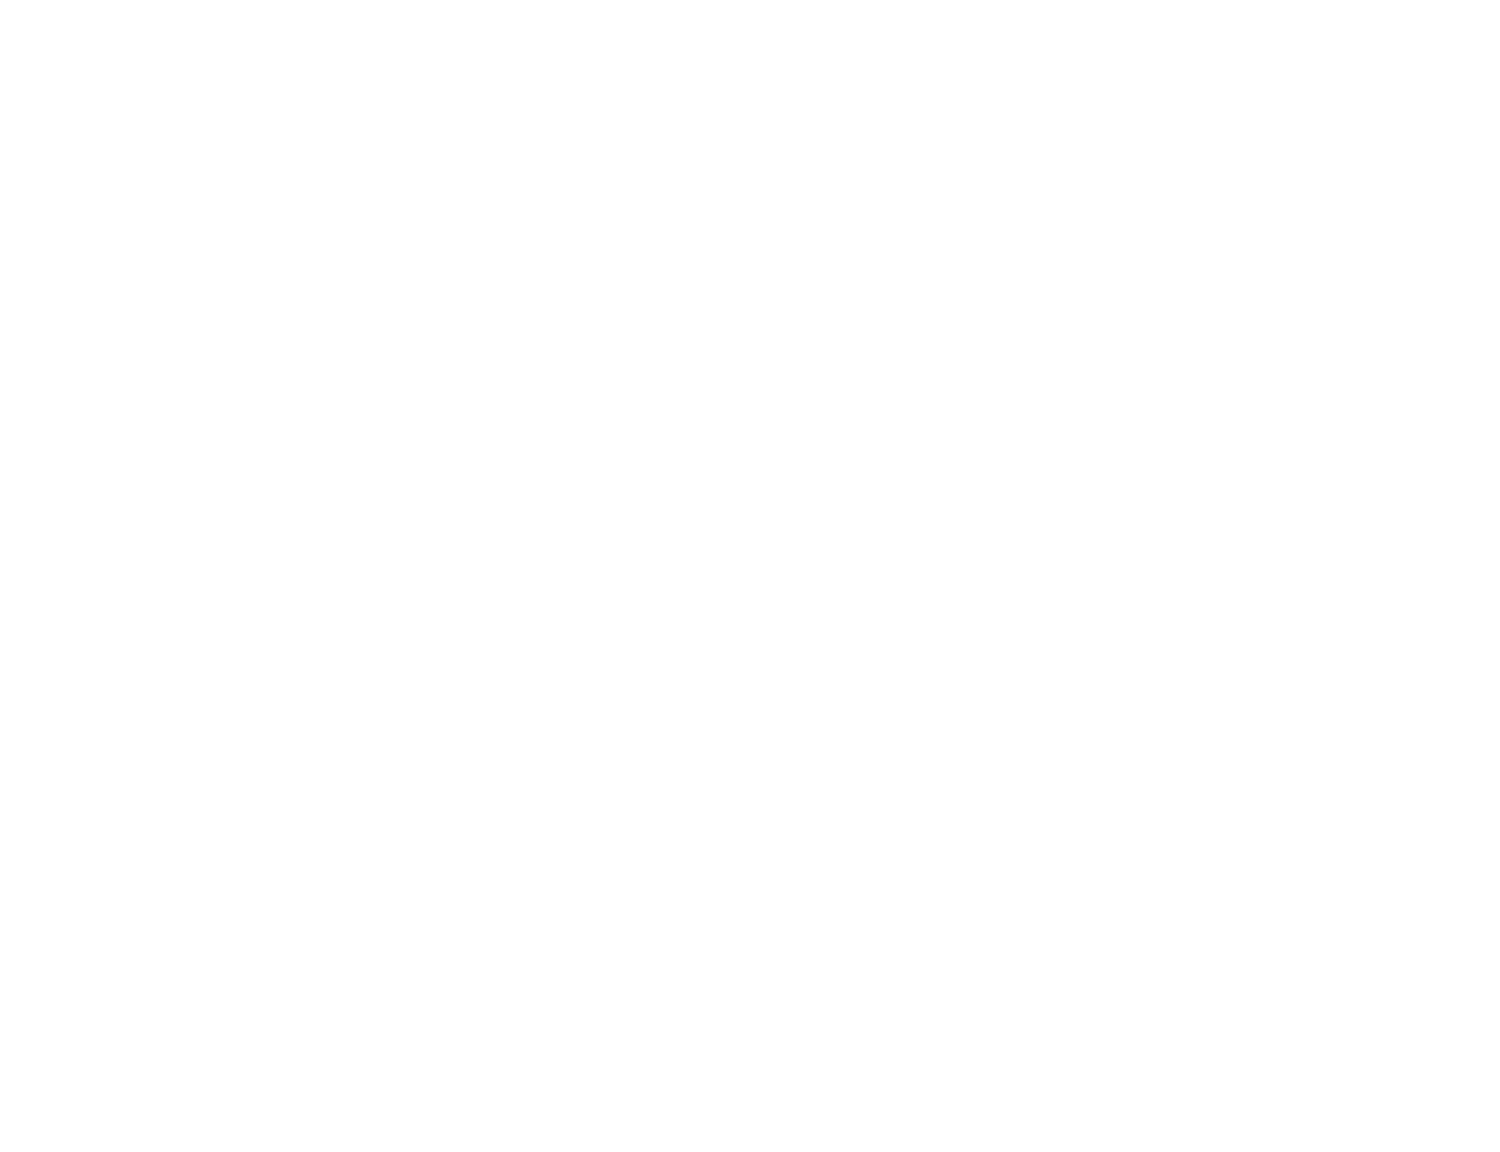 Nova Coffee Co